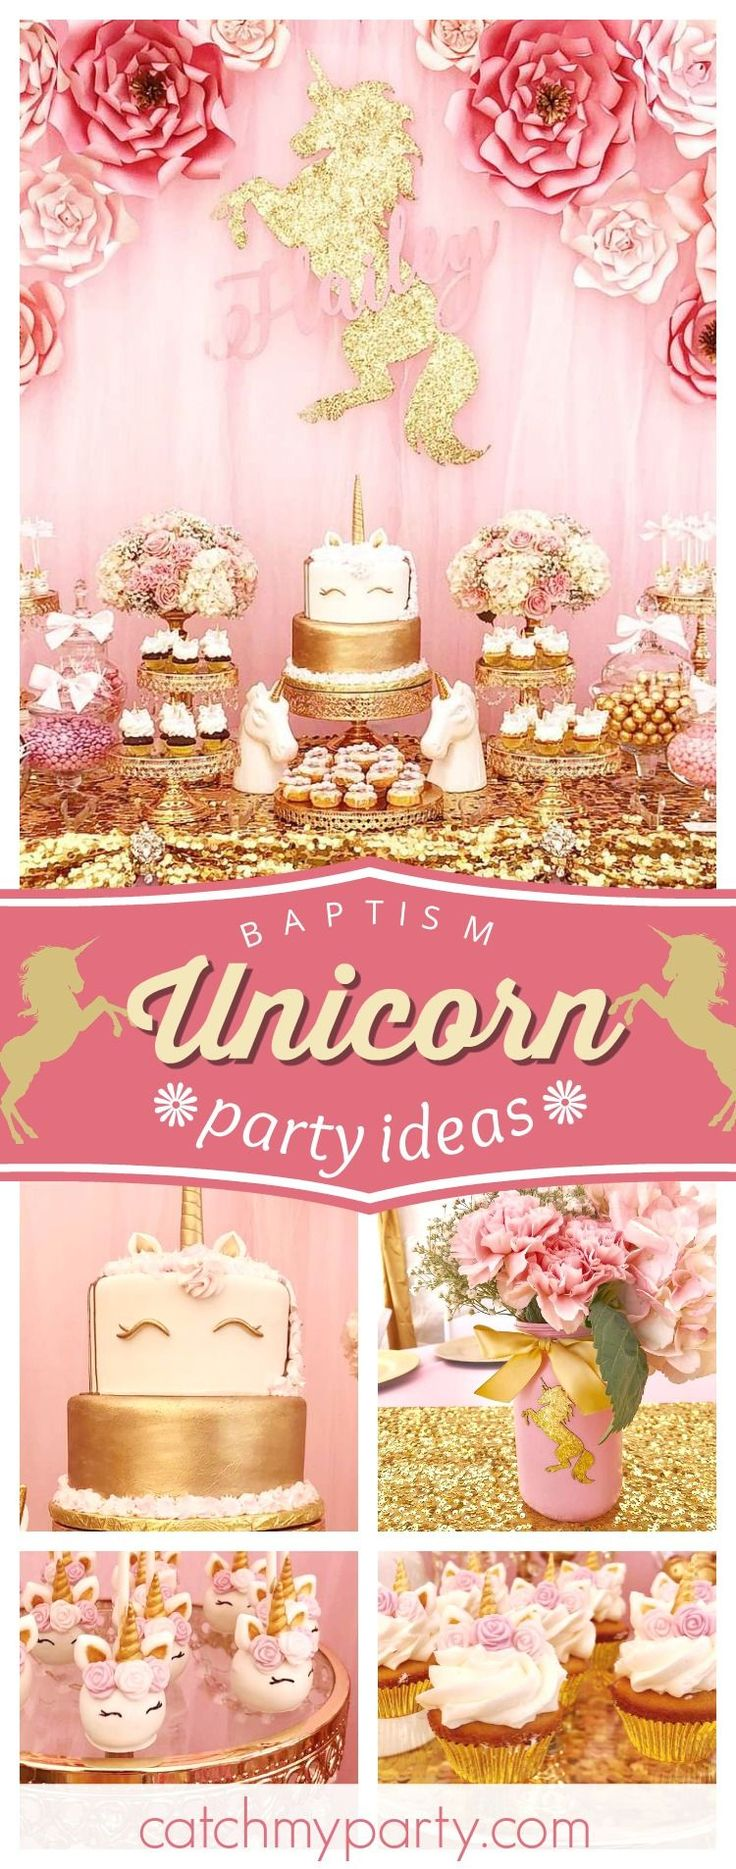 Don't miss this magical Unicorn Baptism celebration! The dessert table is gorgeous!! See more party ideas and share yours at CatchMyParty.com #catchmyparty #unicornparty #baptism